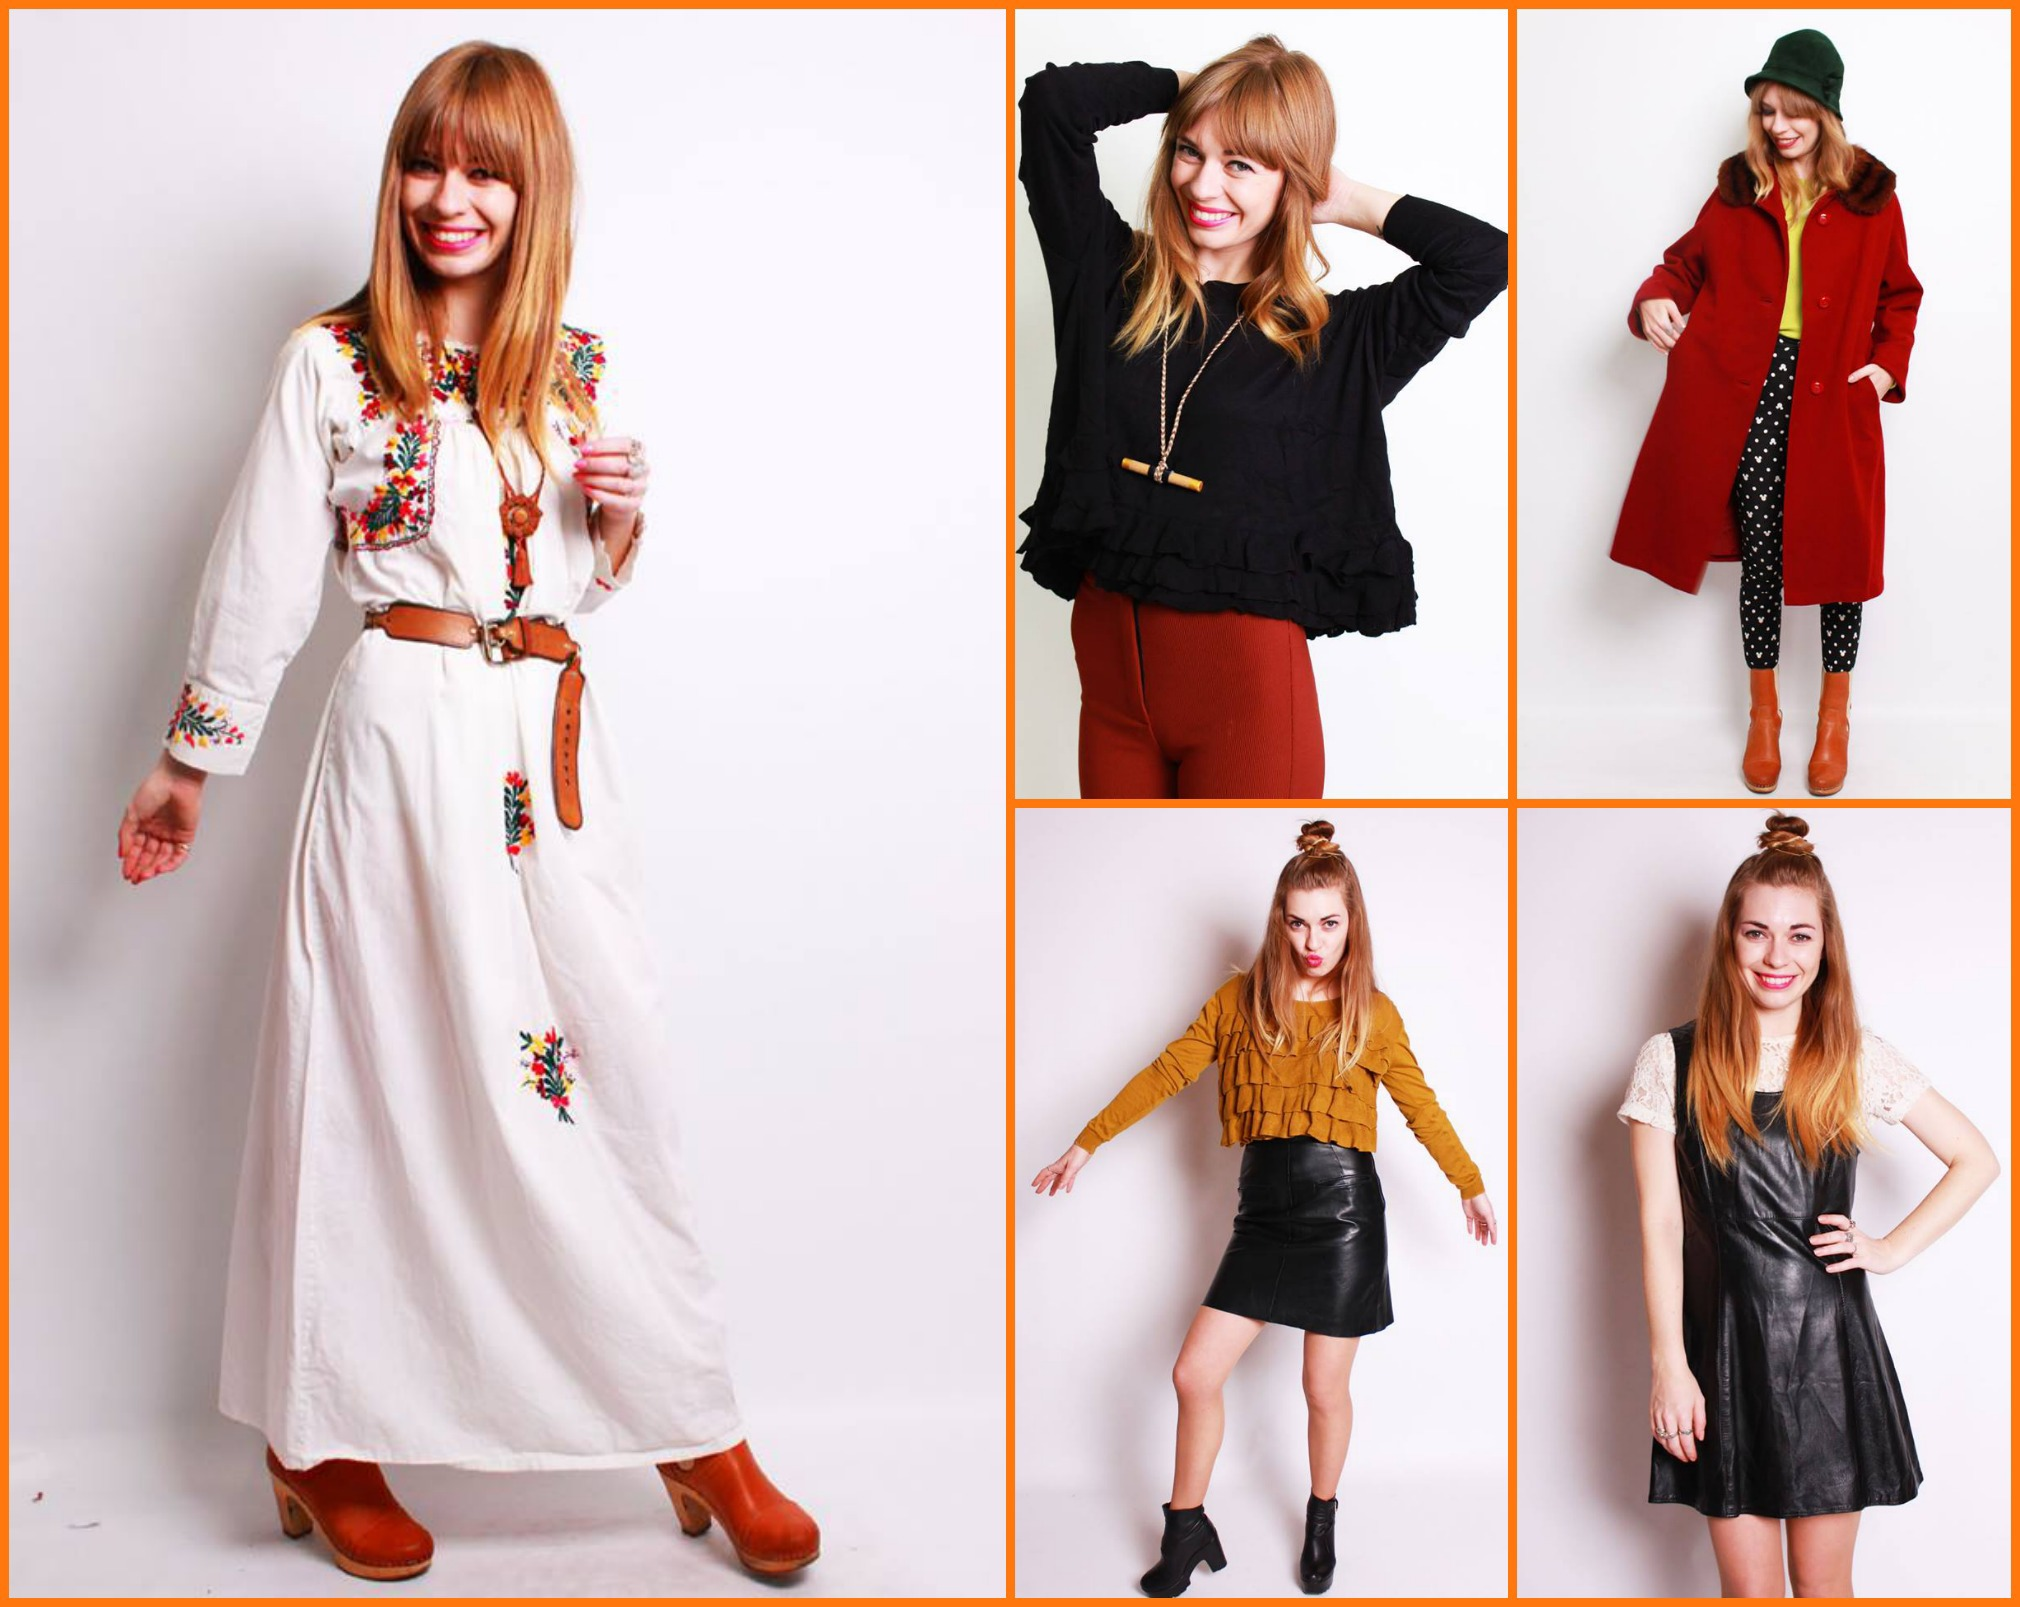 Mod clothing online